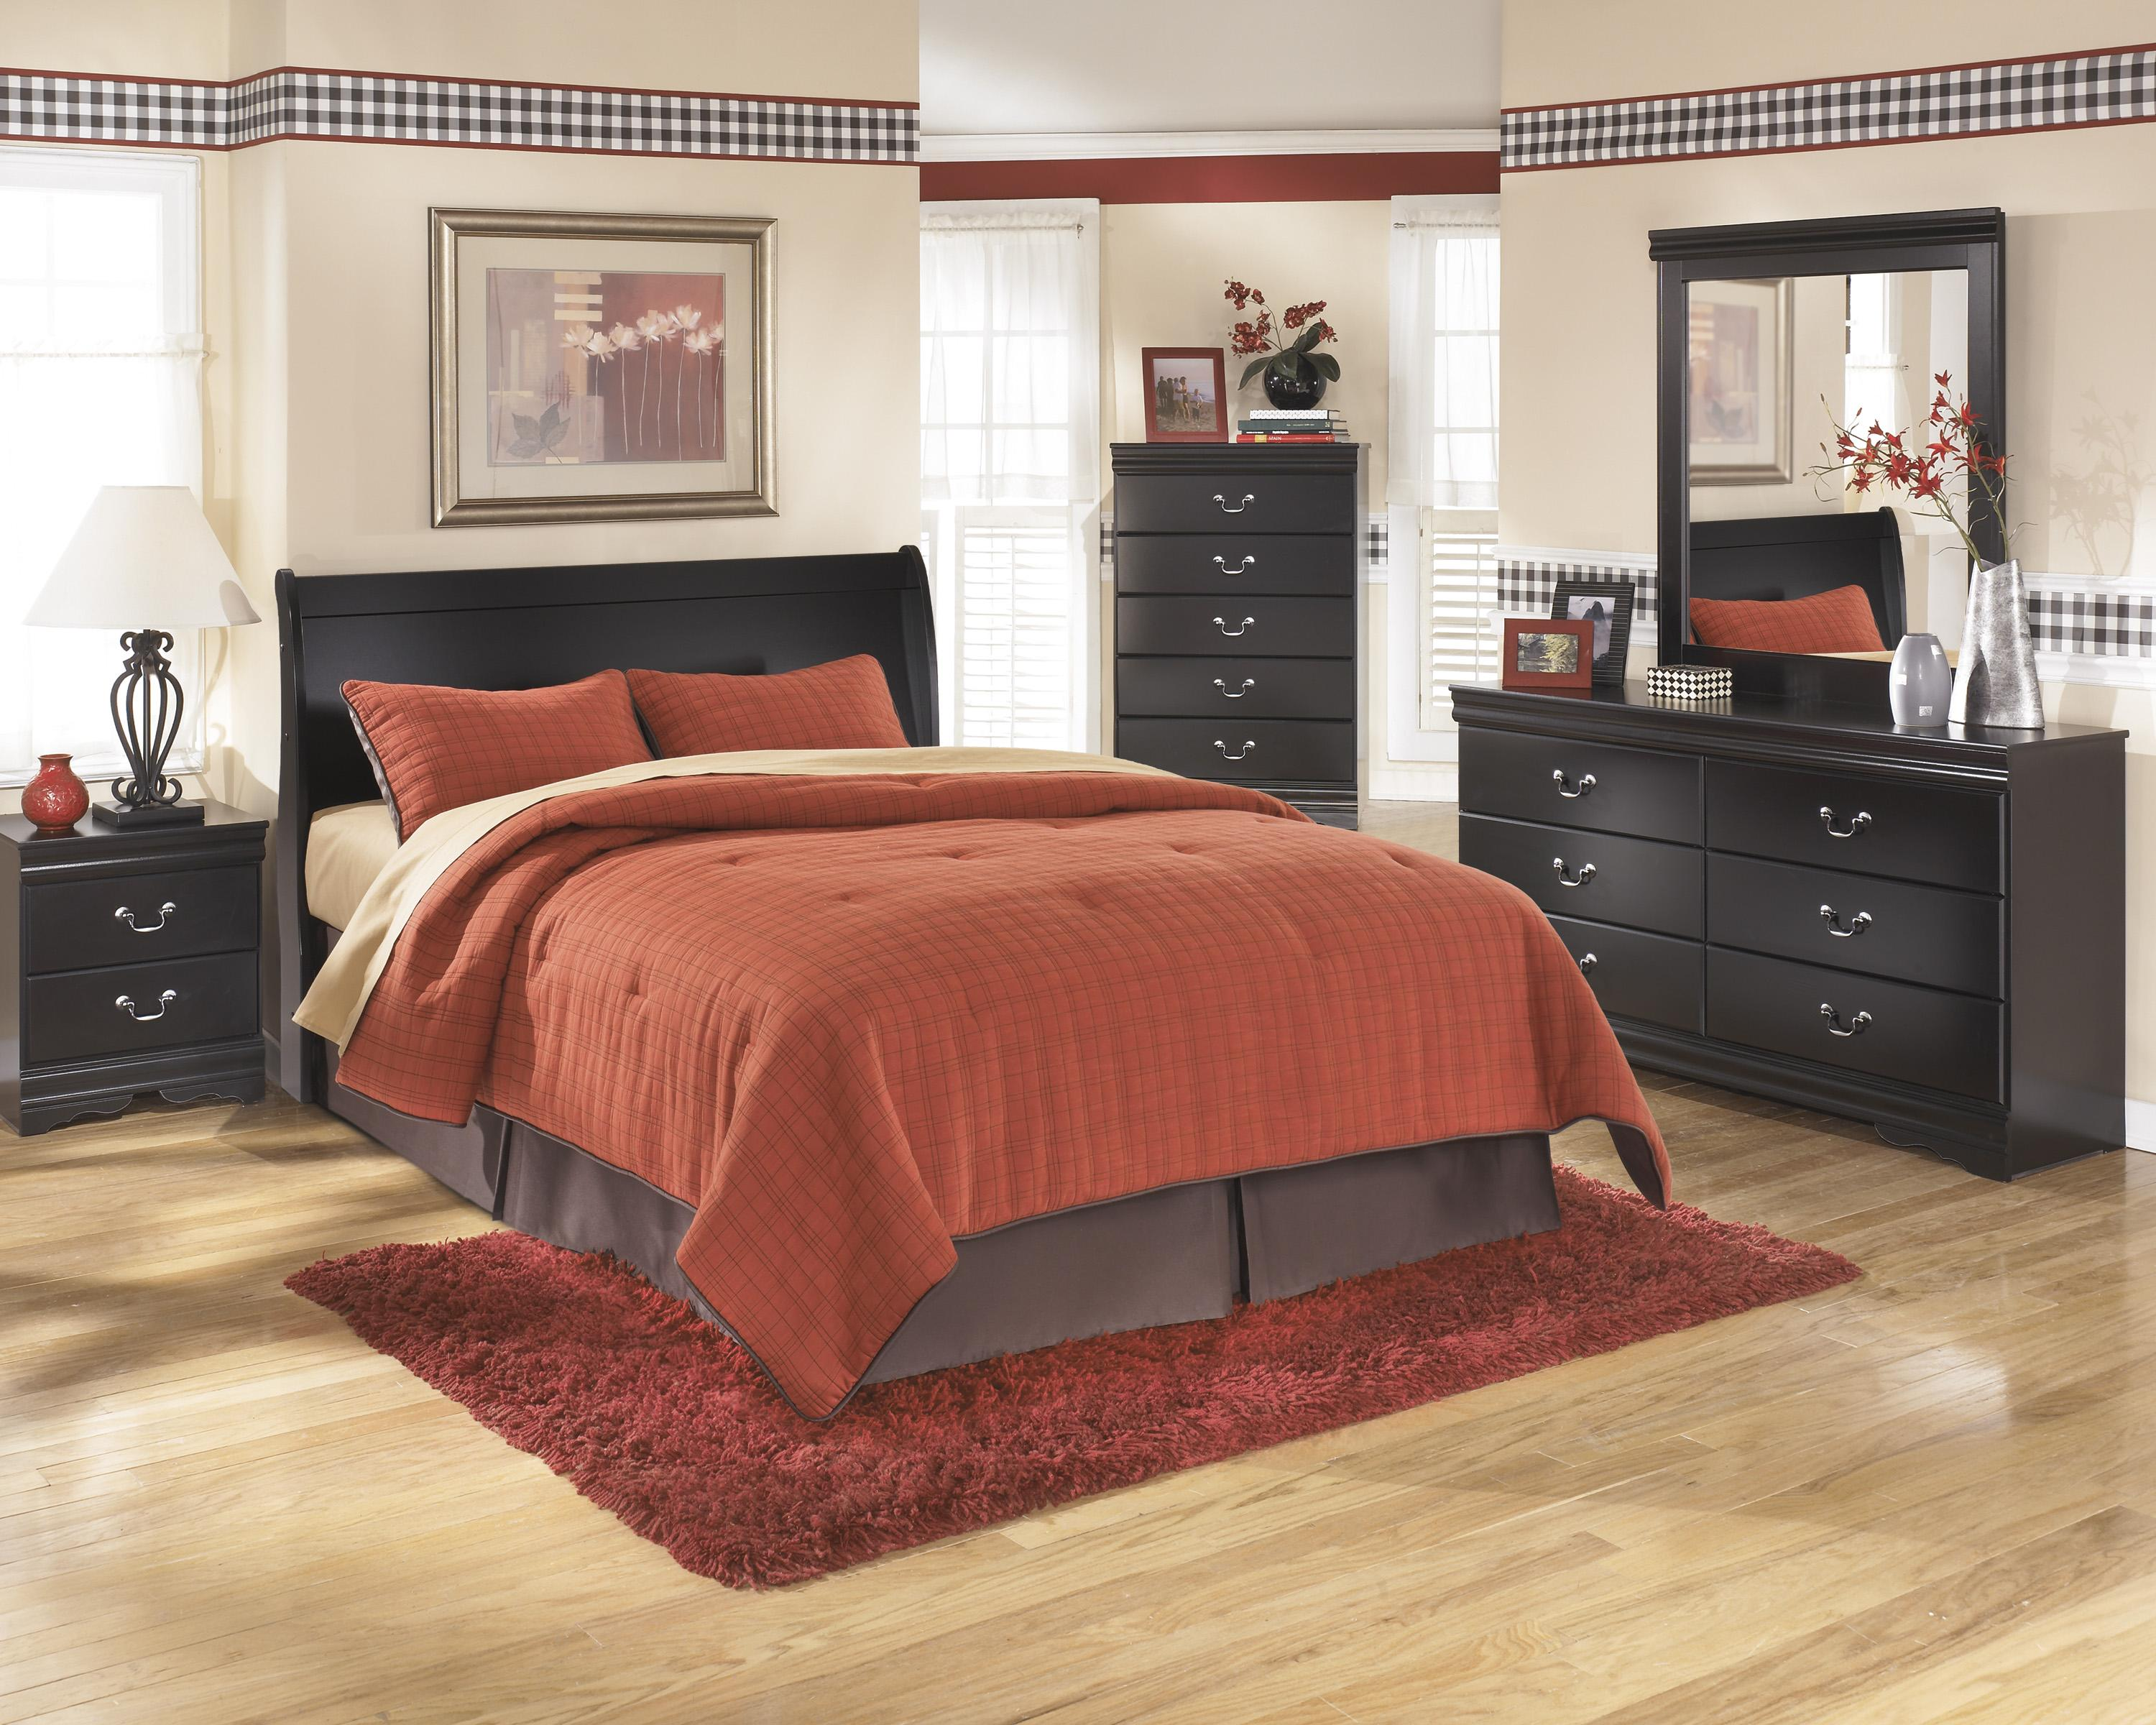 Huey Vineyard King Bedroom Group by Signature Design by Ashley at Zak's Warehouse Clearance Center